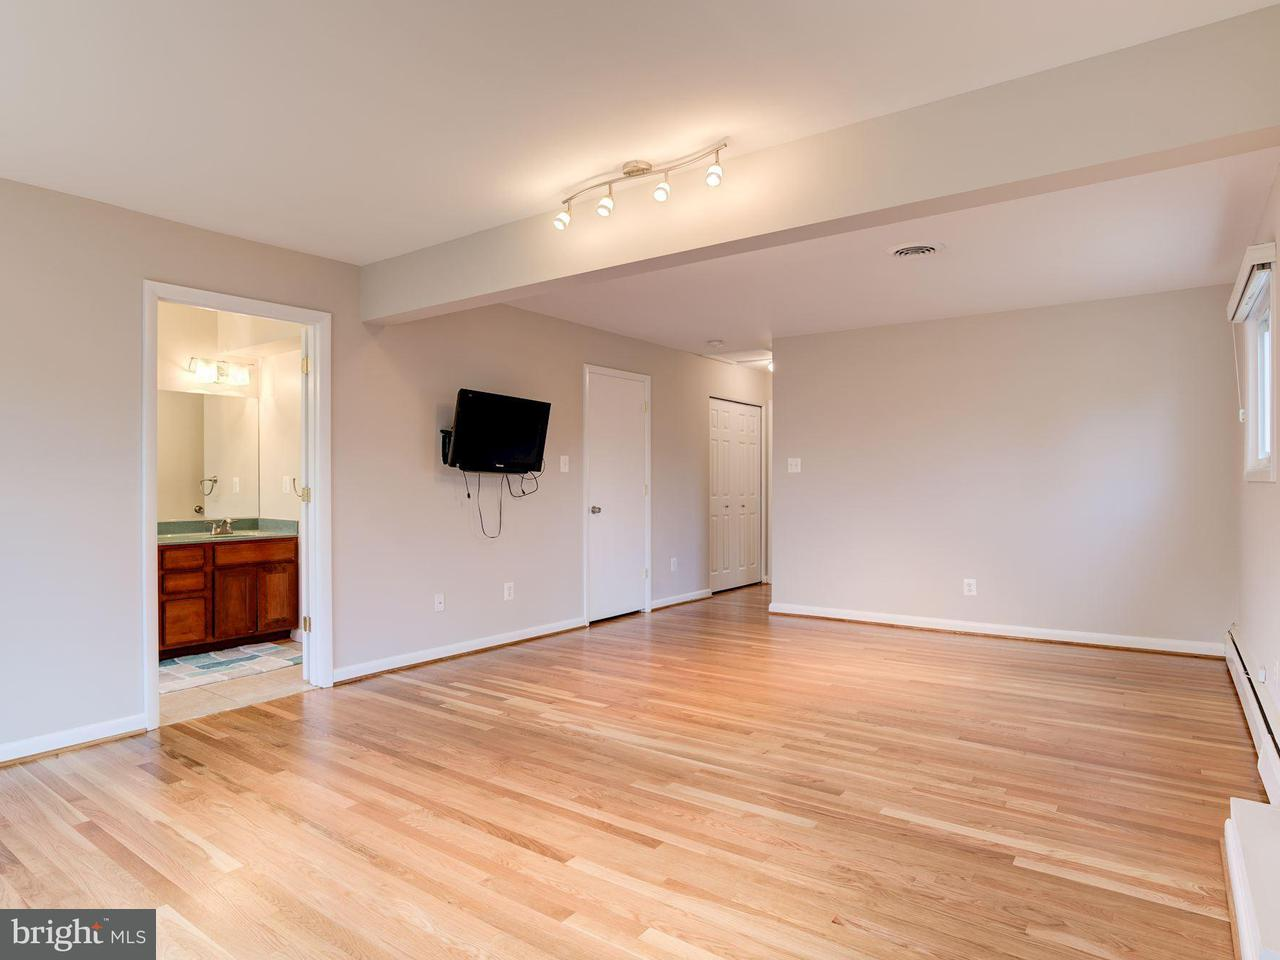 Additional photo for property listing at 3718 Randolph Street 3718 Randolph Street Fairfax, 버지니아 22030 미국